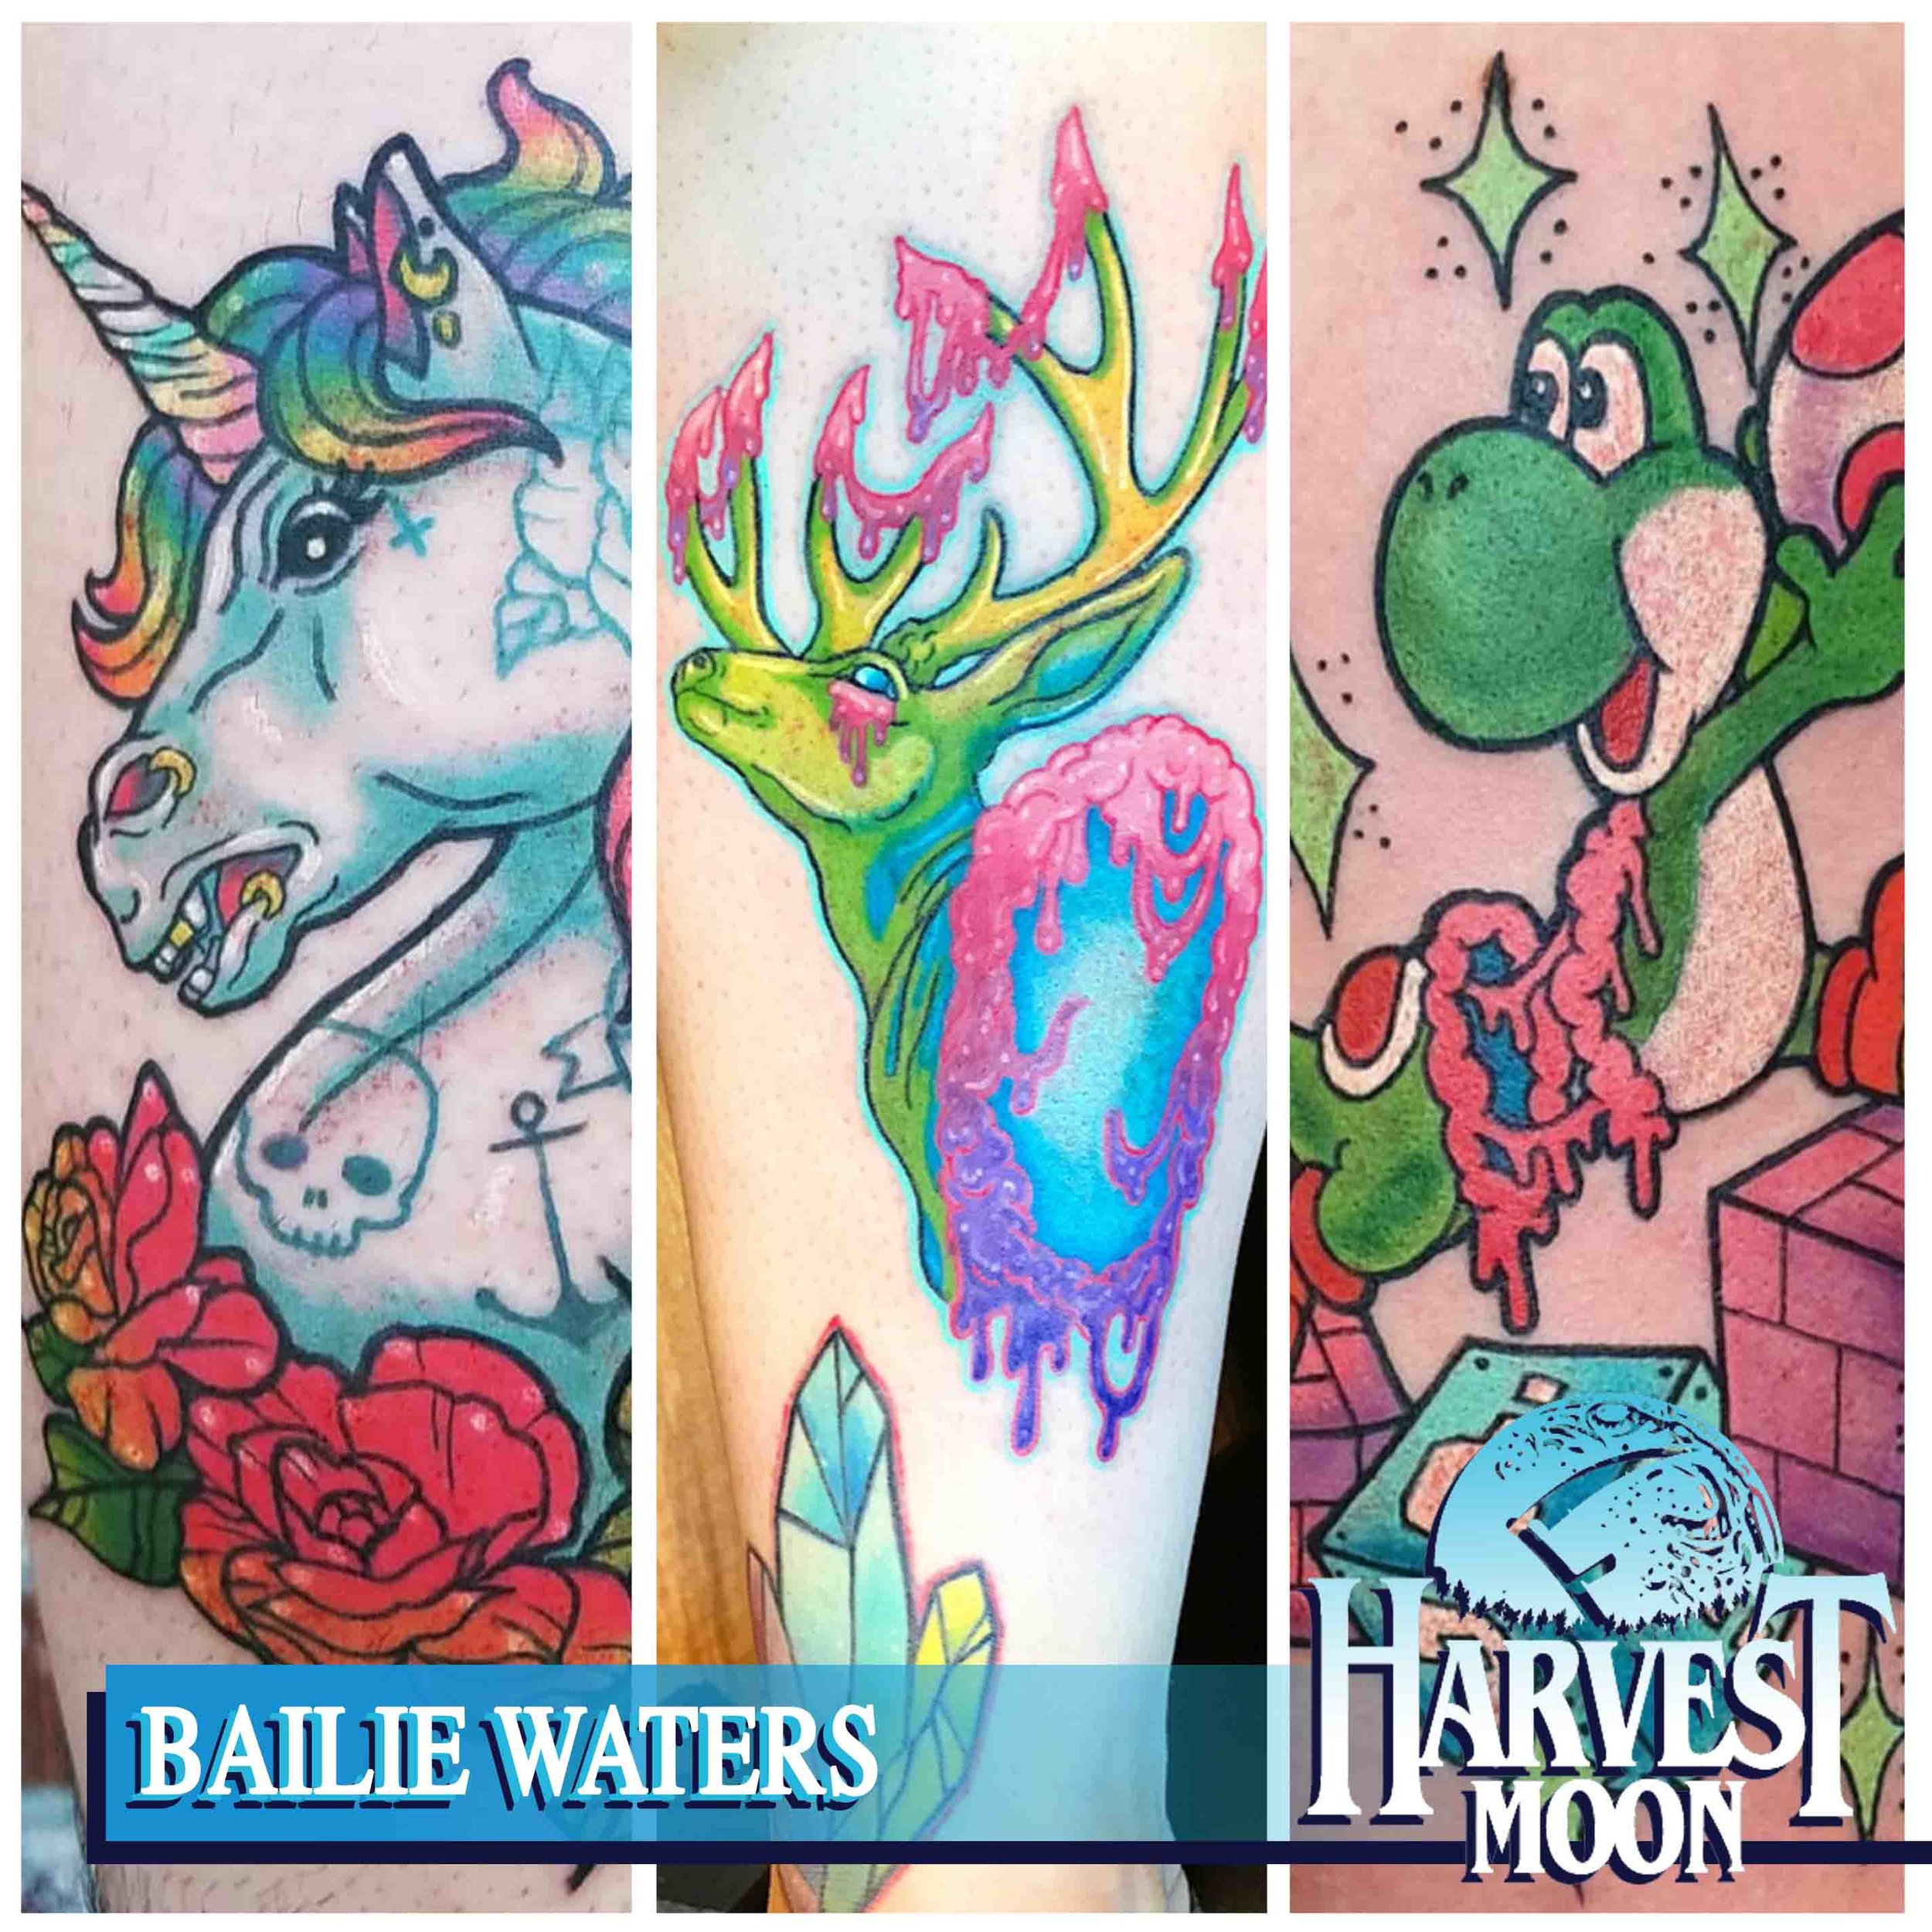 Tattoos by Bailie Waters Portland, OR